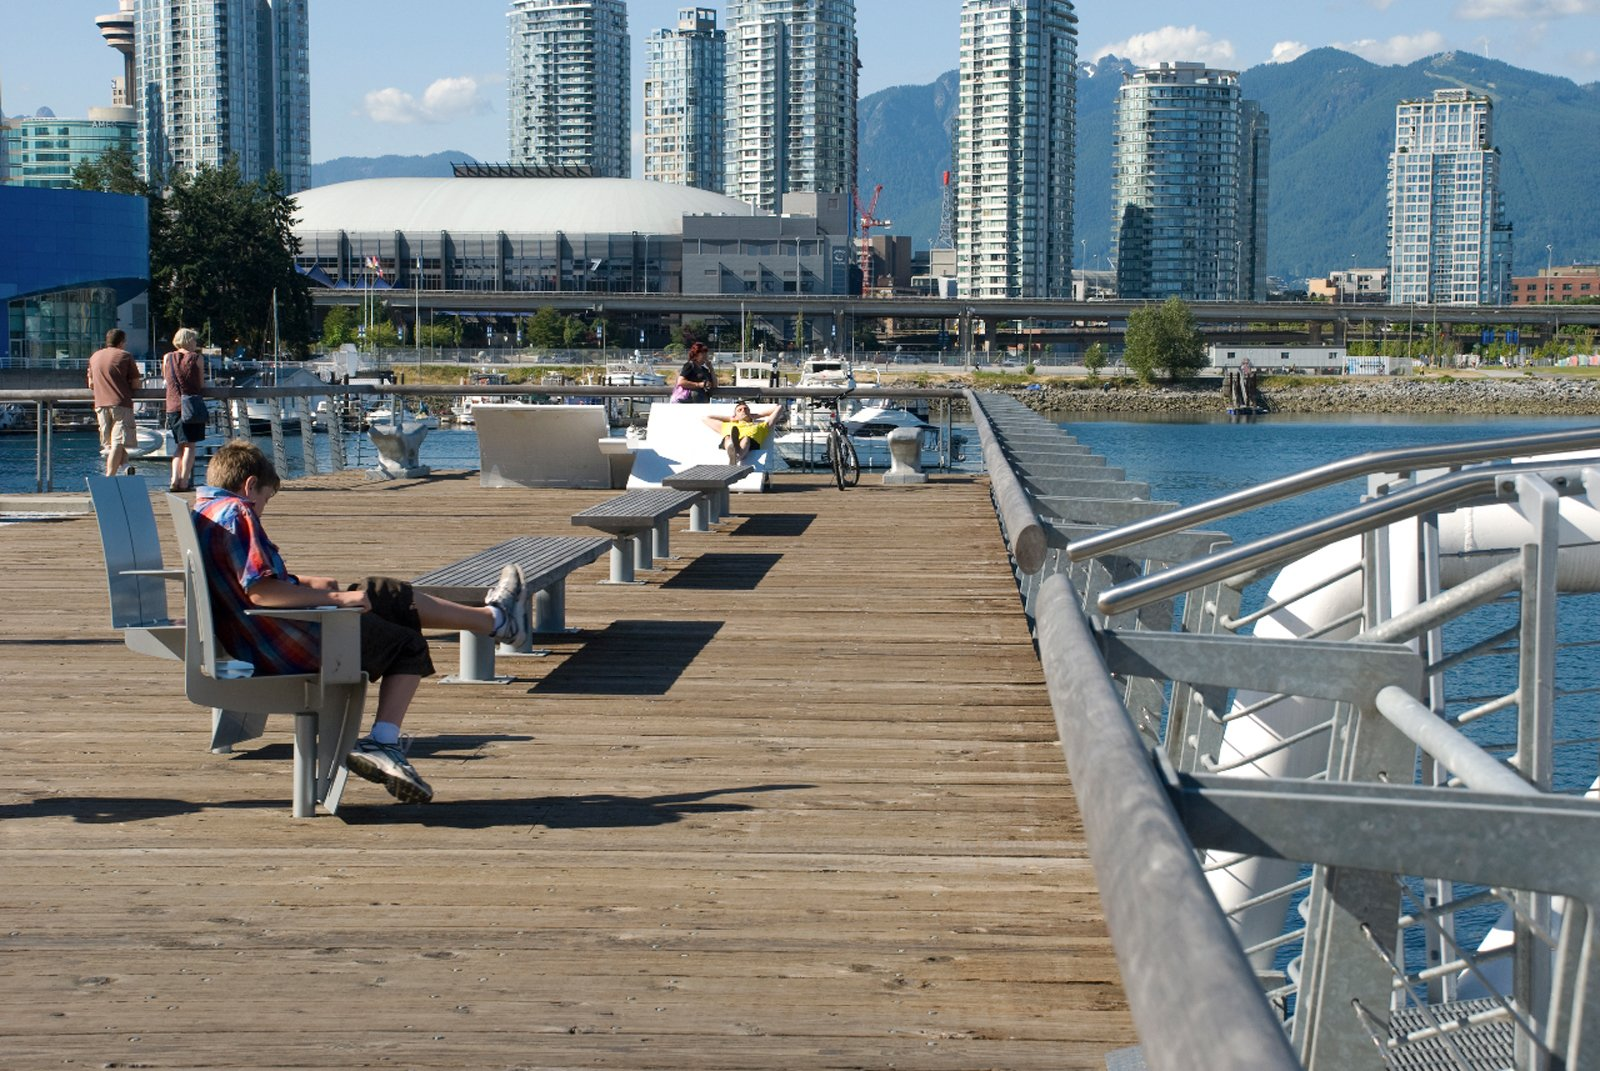 Olympic Village by PWL  A mix of street furniture designed for the Olympic Village in Vancouver offers swiveled chairs (all comforts of home right on the waterfront!) with oversized white loungers. Both get plenty of use by people looking to either relax or take in the urban waterfront sites on the newly designed boardwalk.  Great Designs from Vancouver by Erika Heet